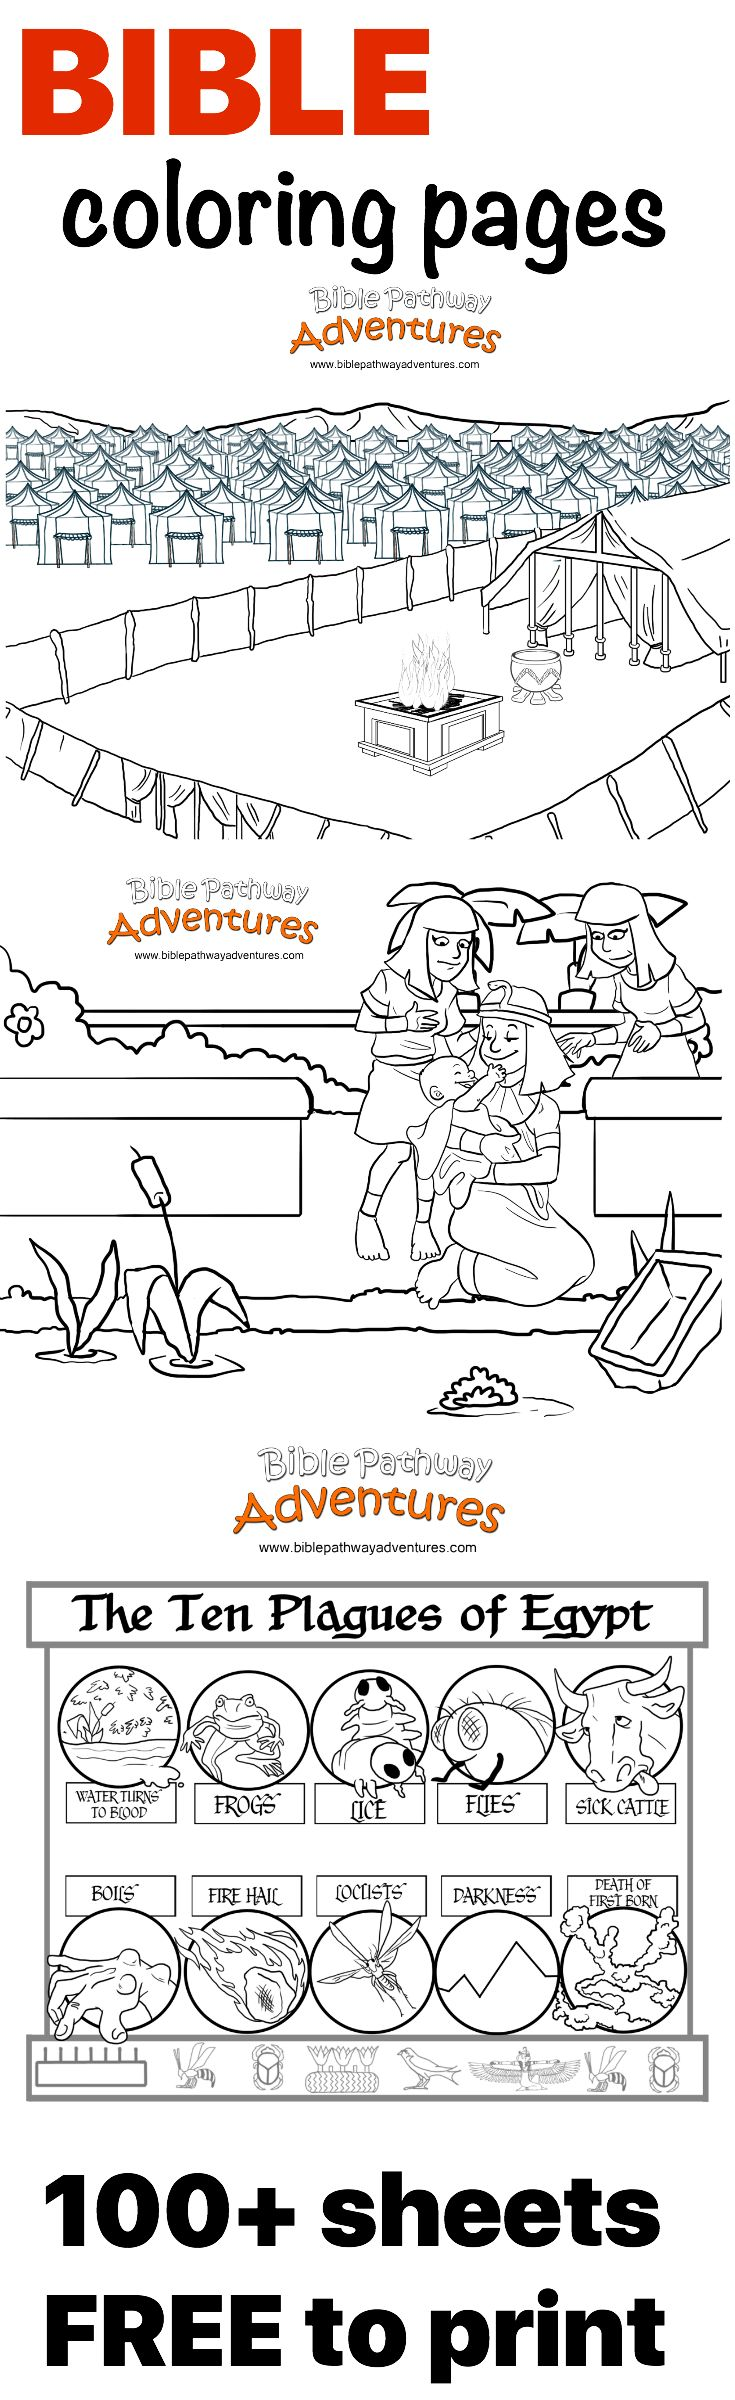 Free bible story coloring pages for kids - Best 25 Bible Coloring Pages Ideas On Pinterest Colouring In Sheets Colouring Sheets For Adults And Free Coloring Sheets